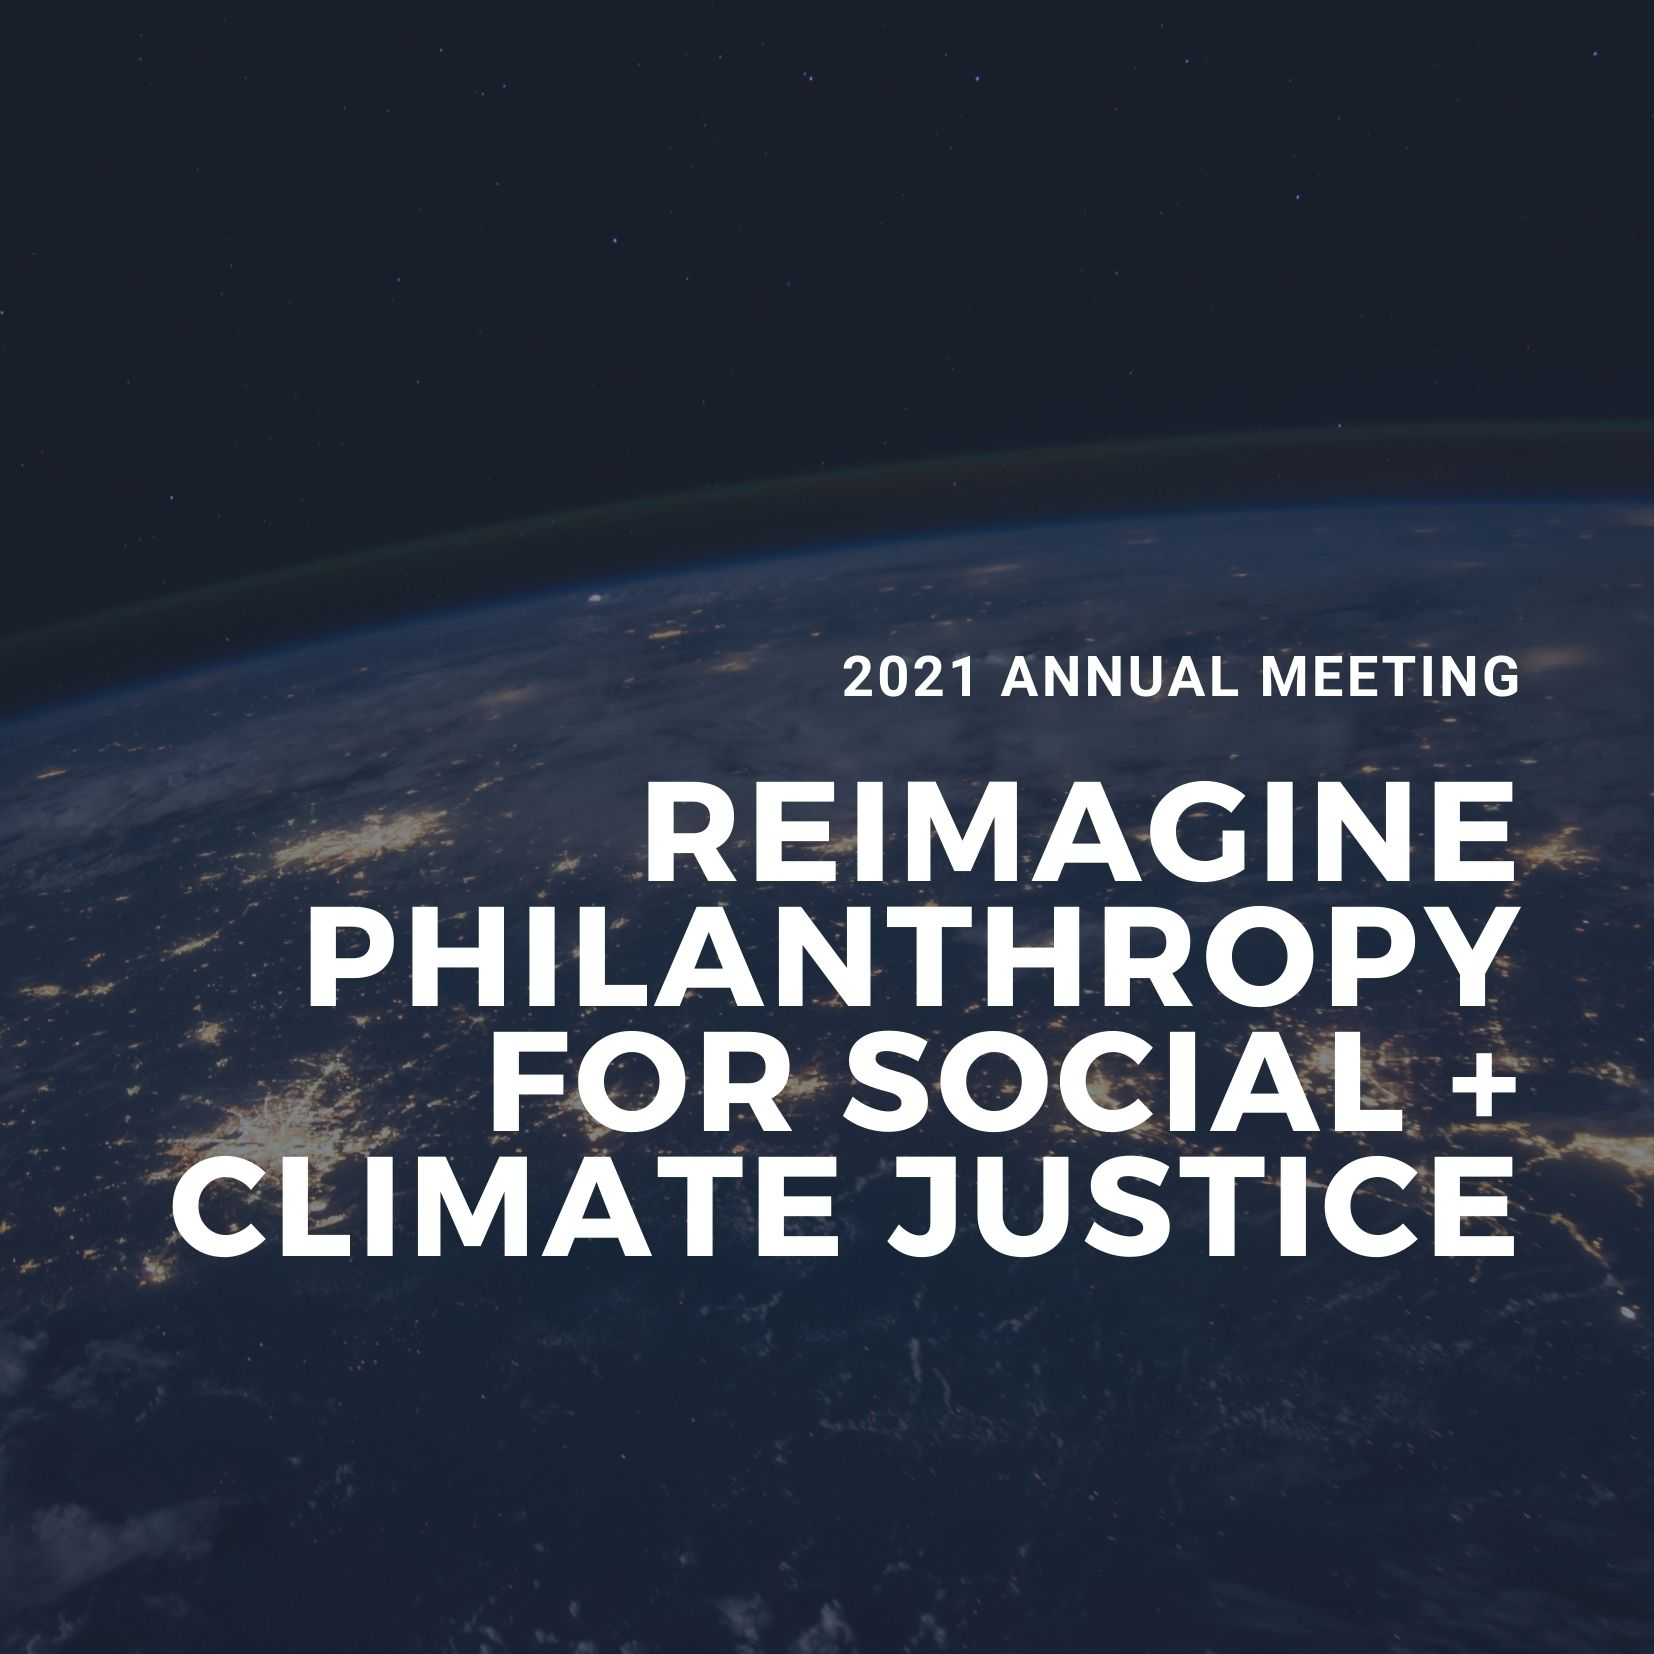 Reimagine Philanthropy for Social and Climate Justice